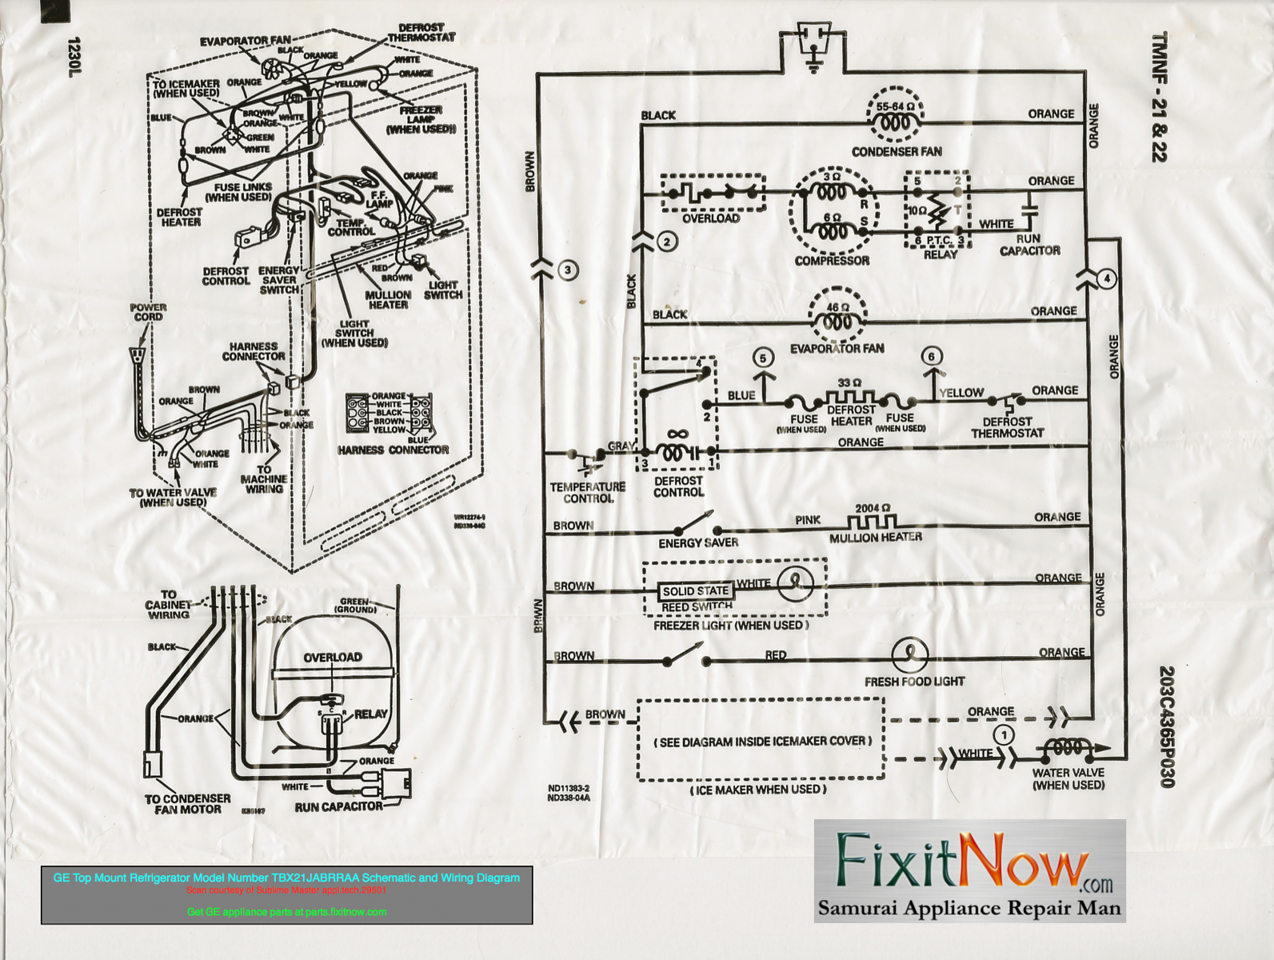 4904374061_e8eb3df6c6_o X2 wiring diagrams and schematics appliantology ge range wiring diagram at bakdesigns.co